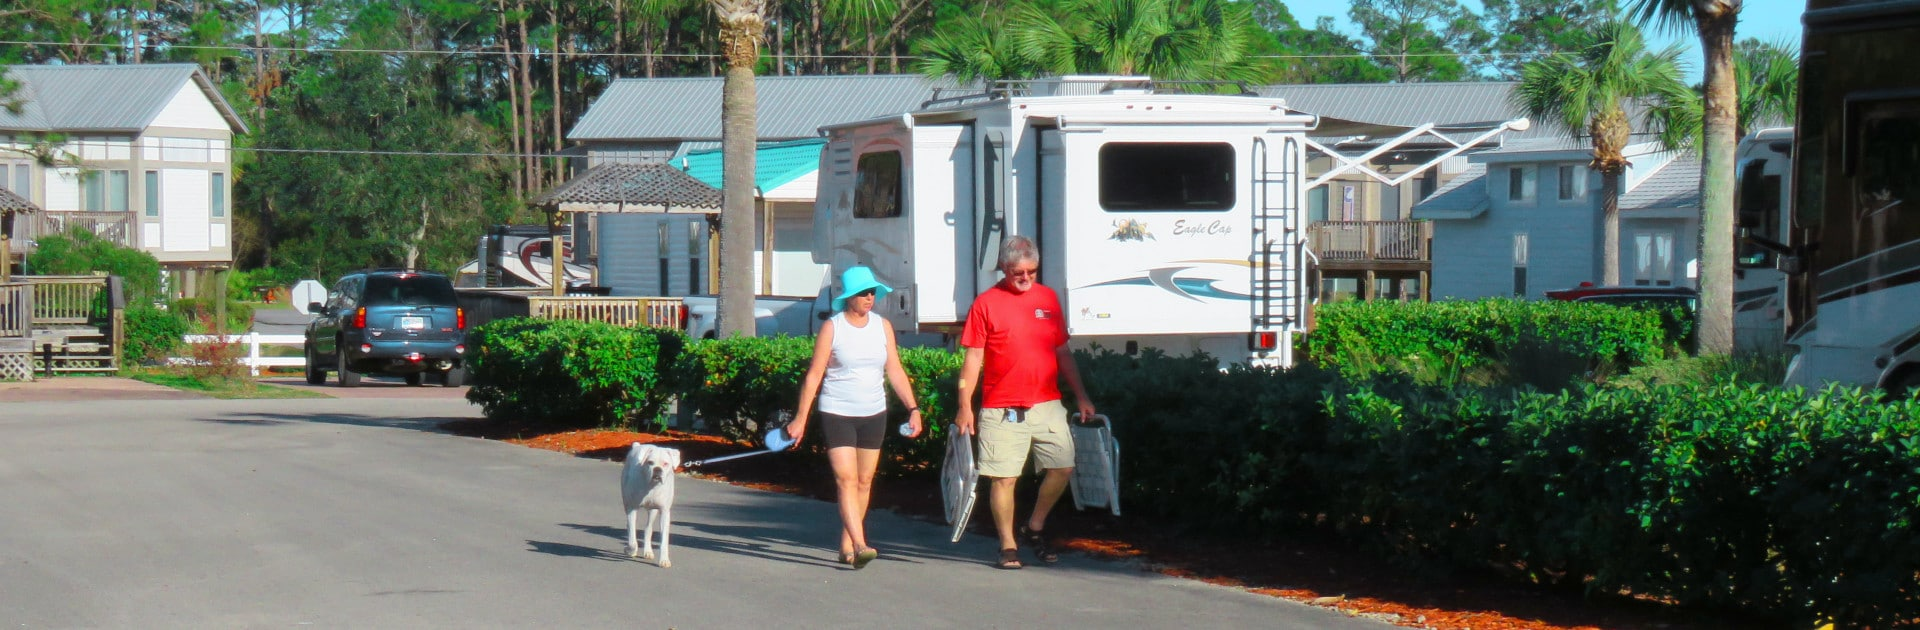 Couple Walking Dog at Carrabelle Beach RV Resort